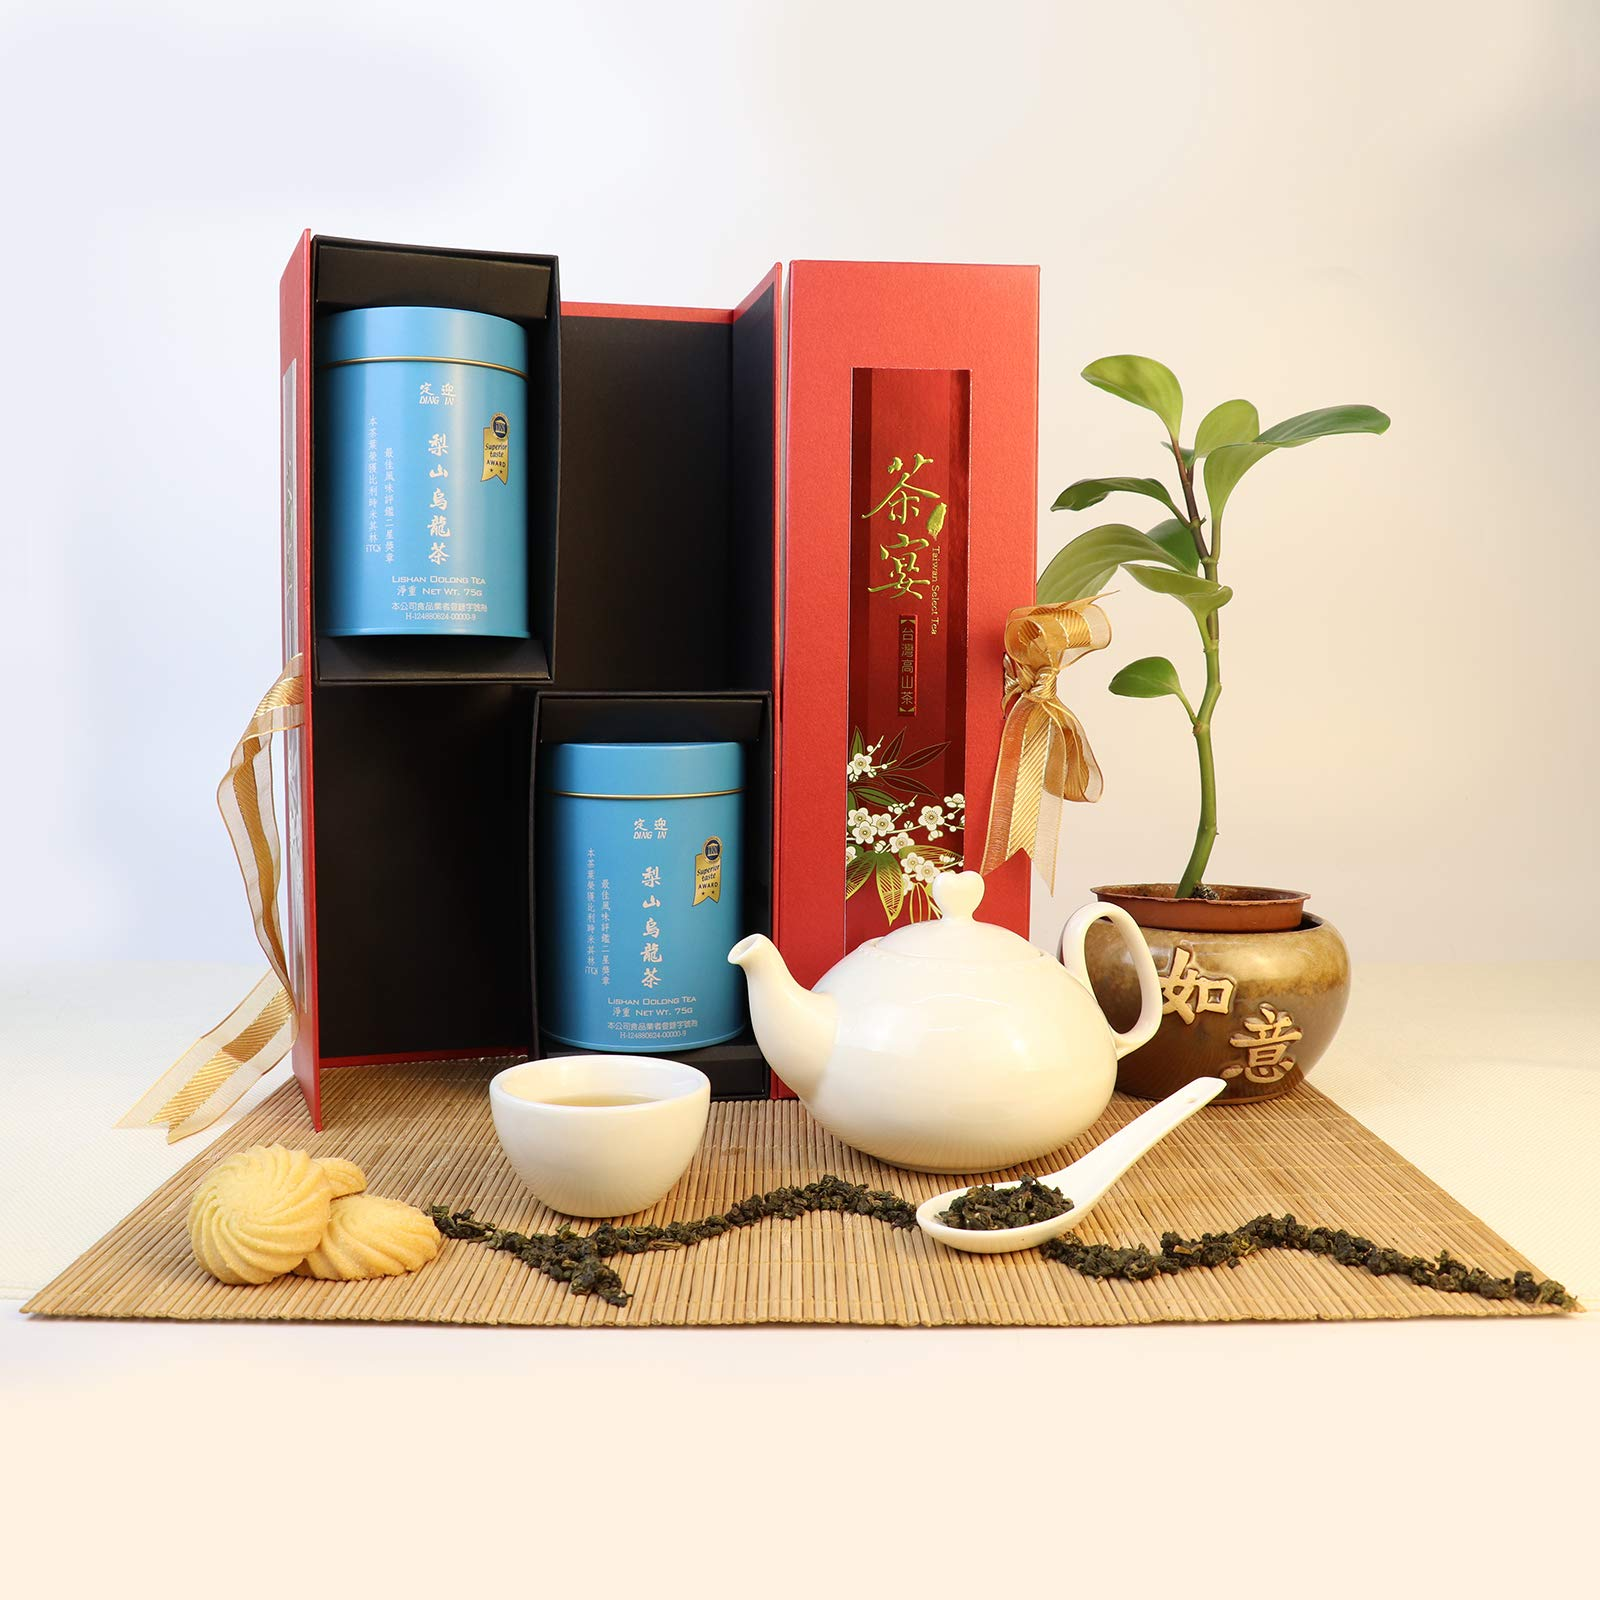 DING IN Lishan Oolong Tea Feast Straight Gift Box 75g/2cans by Ding In ltd. (Image #2)